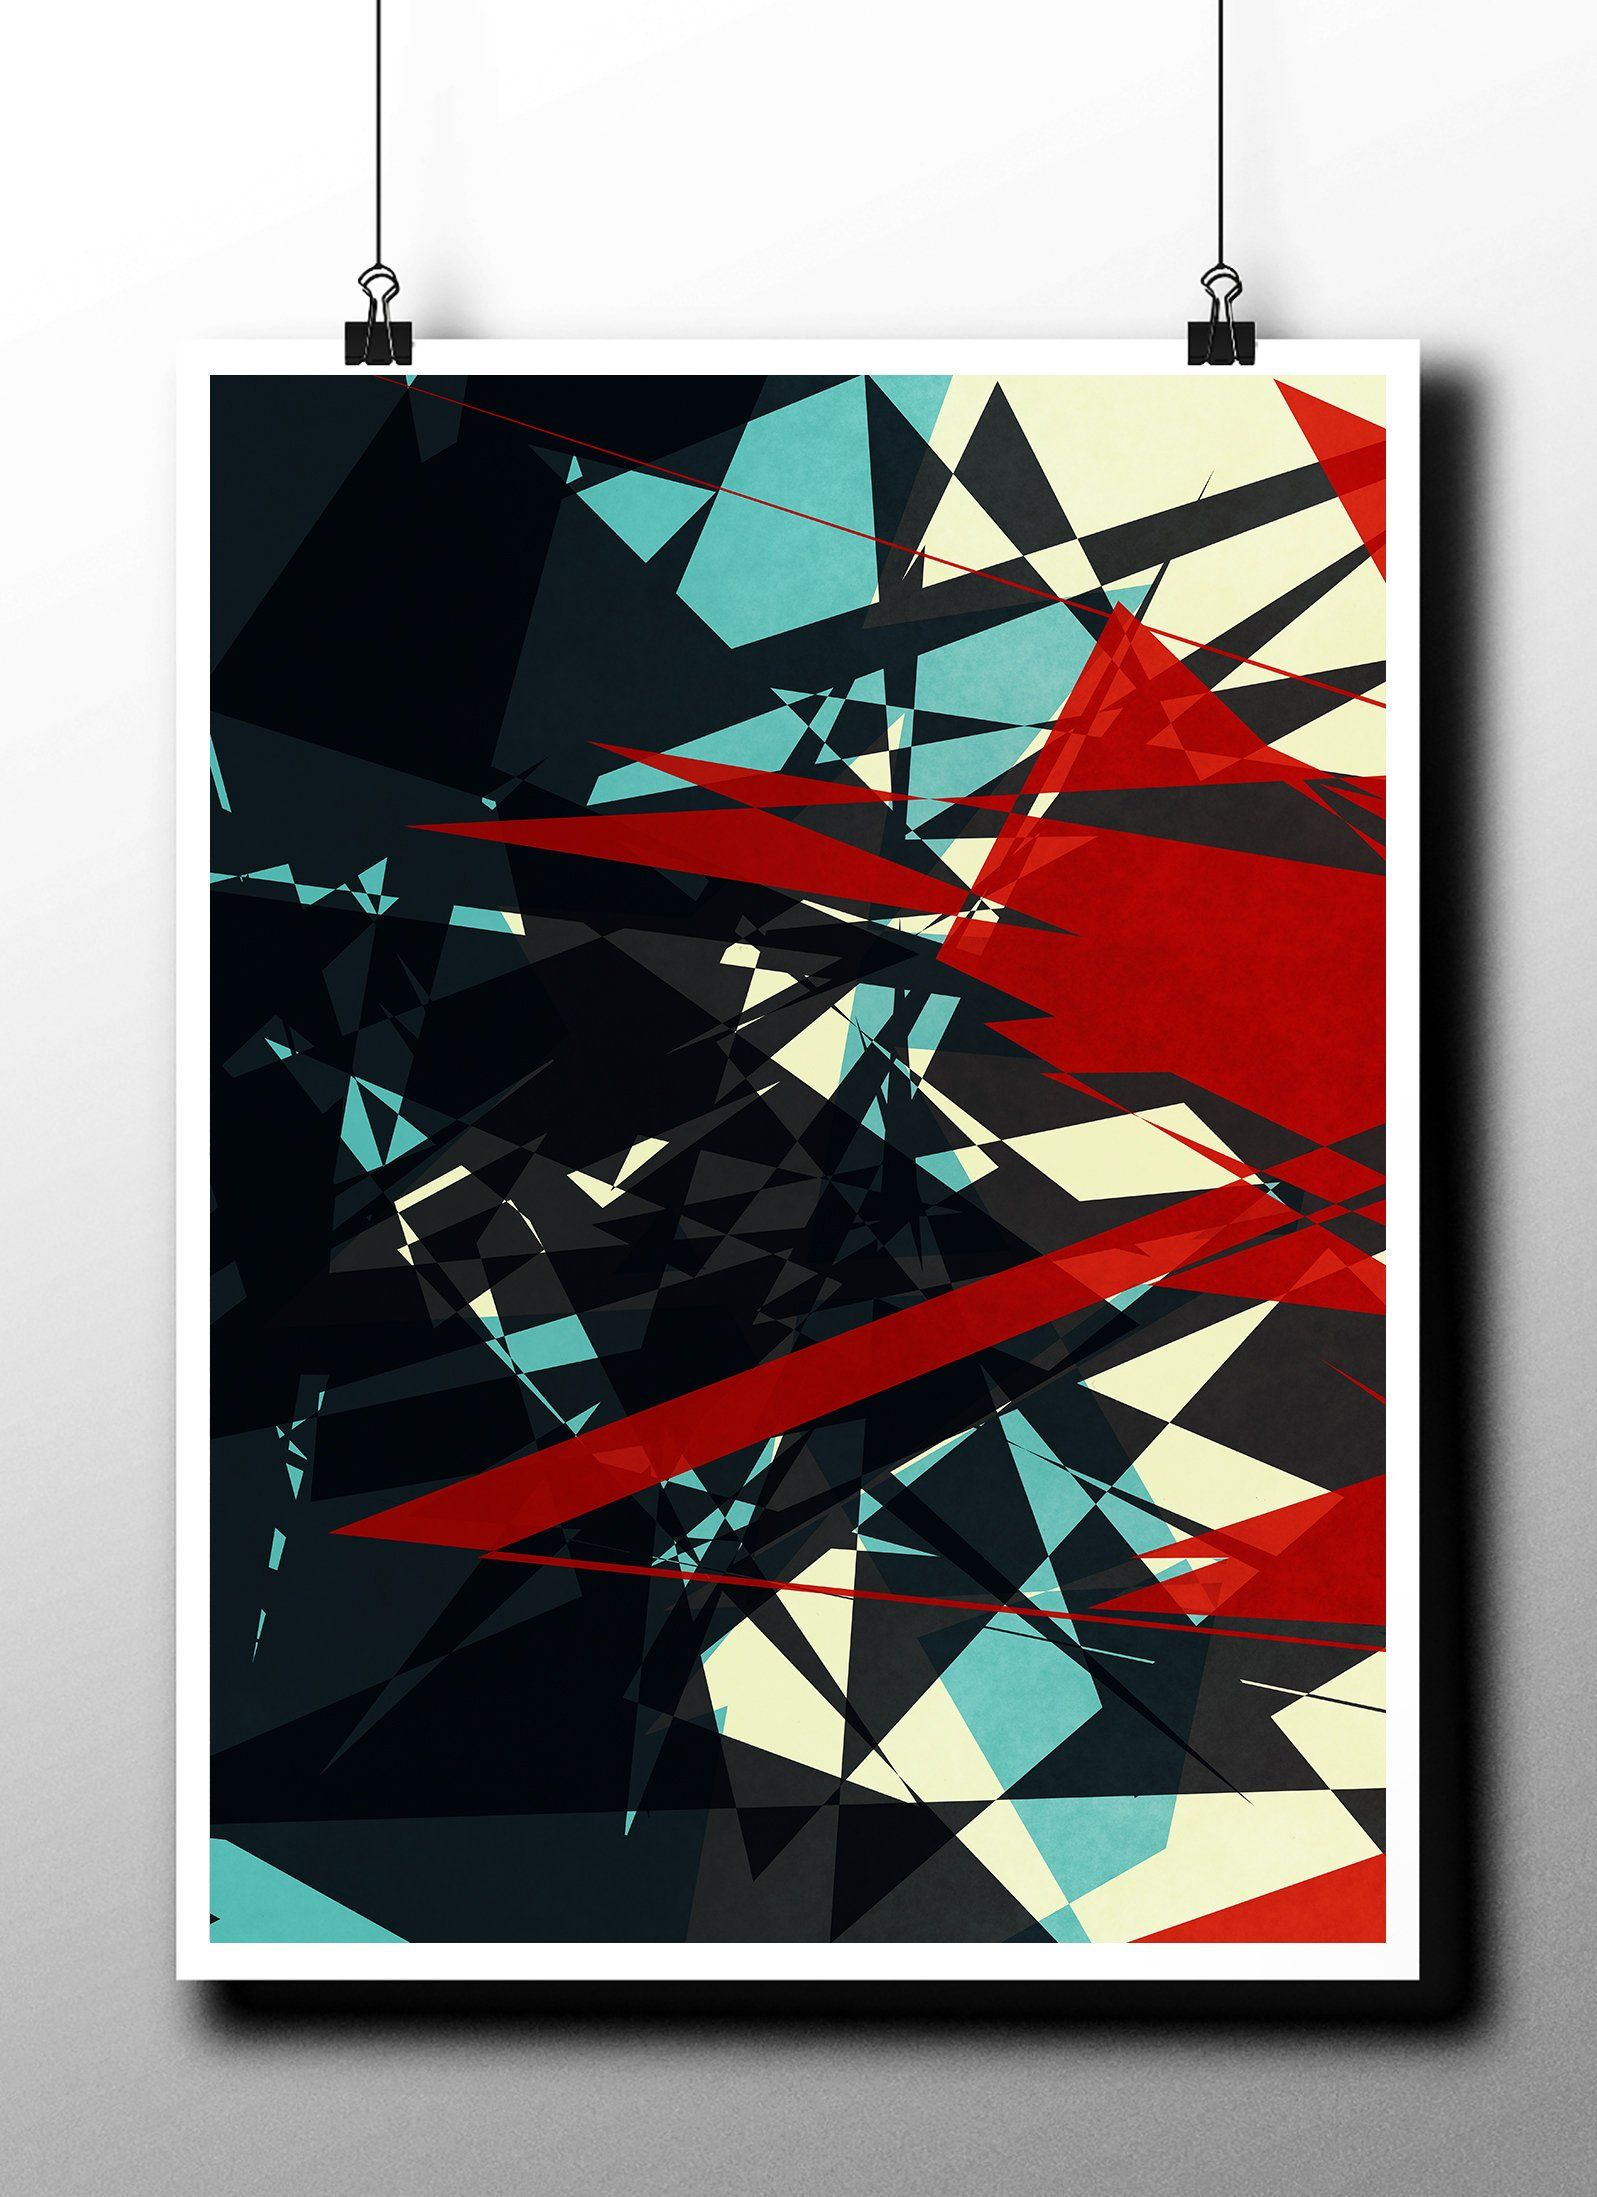 Download Printable Art,Grunge Wall Poster,Abstract Digital